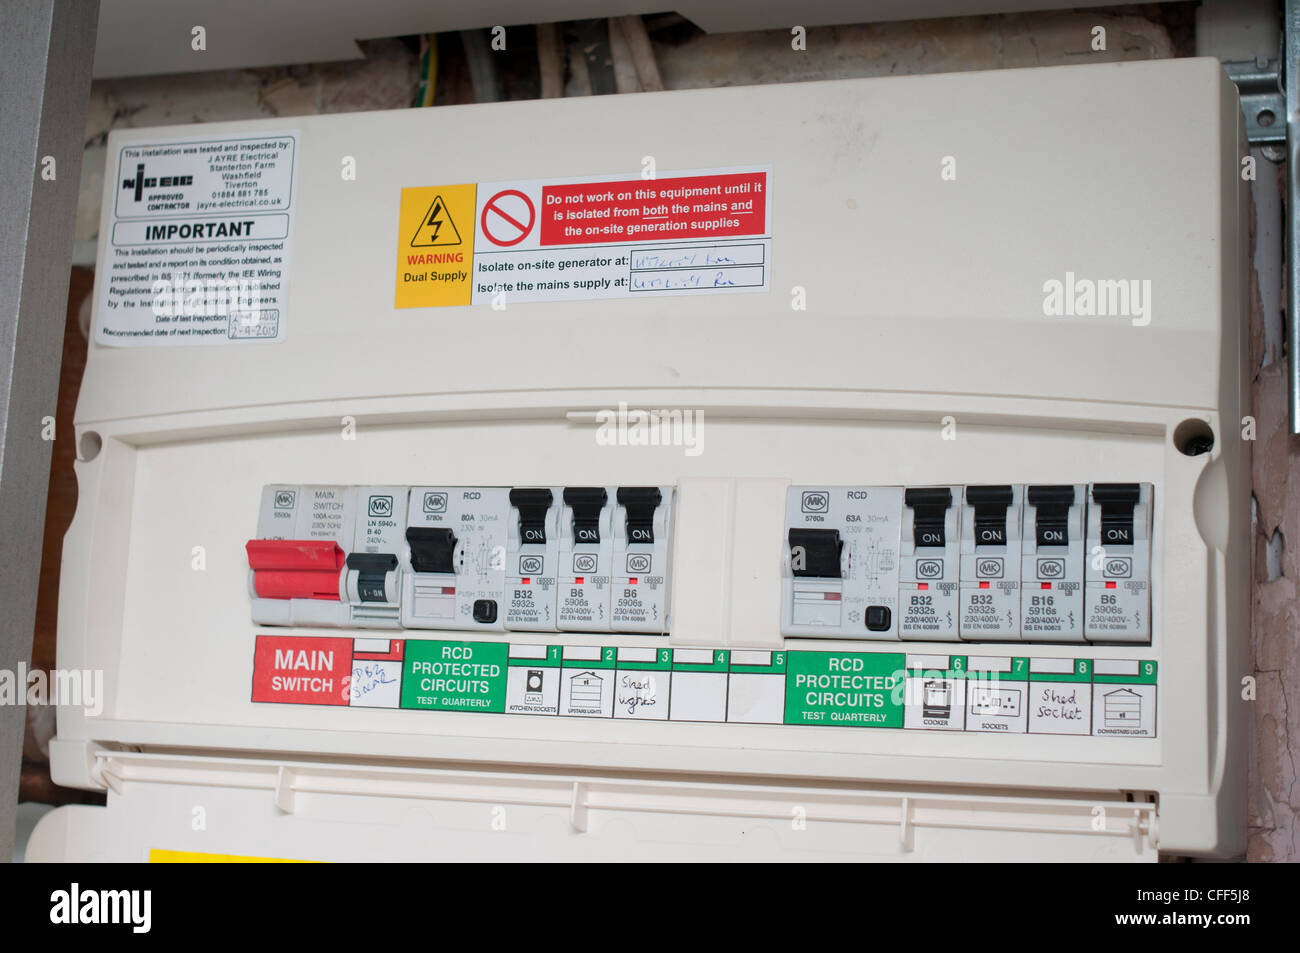 Fuse Box Blog Wiring Diagram Universal Auto Domestic Stock Photos Images Alamy